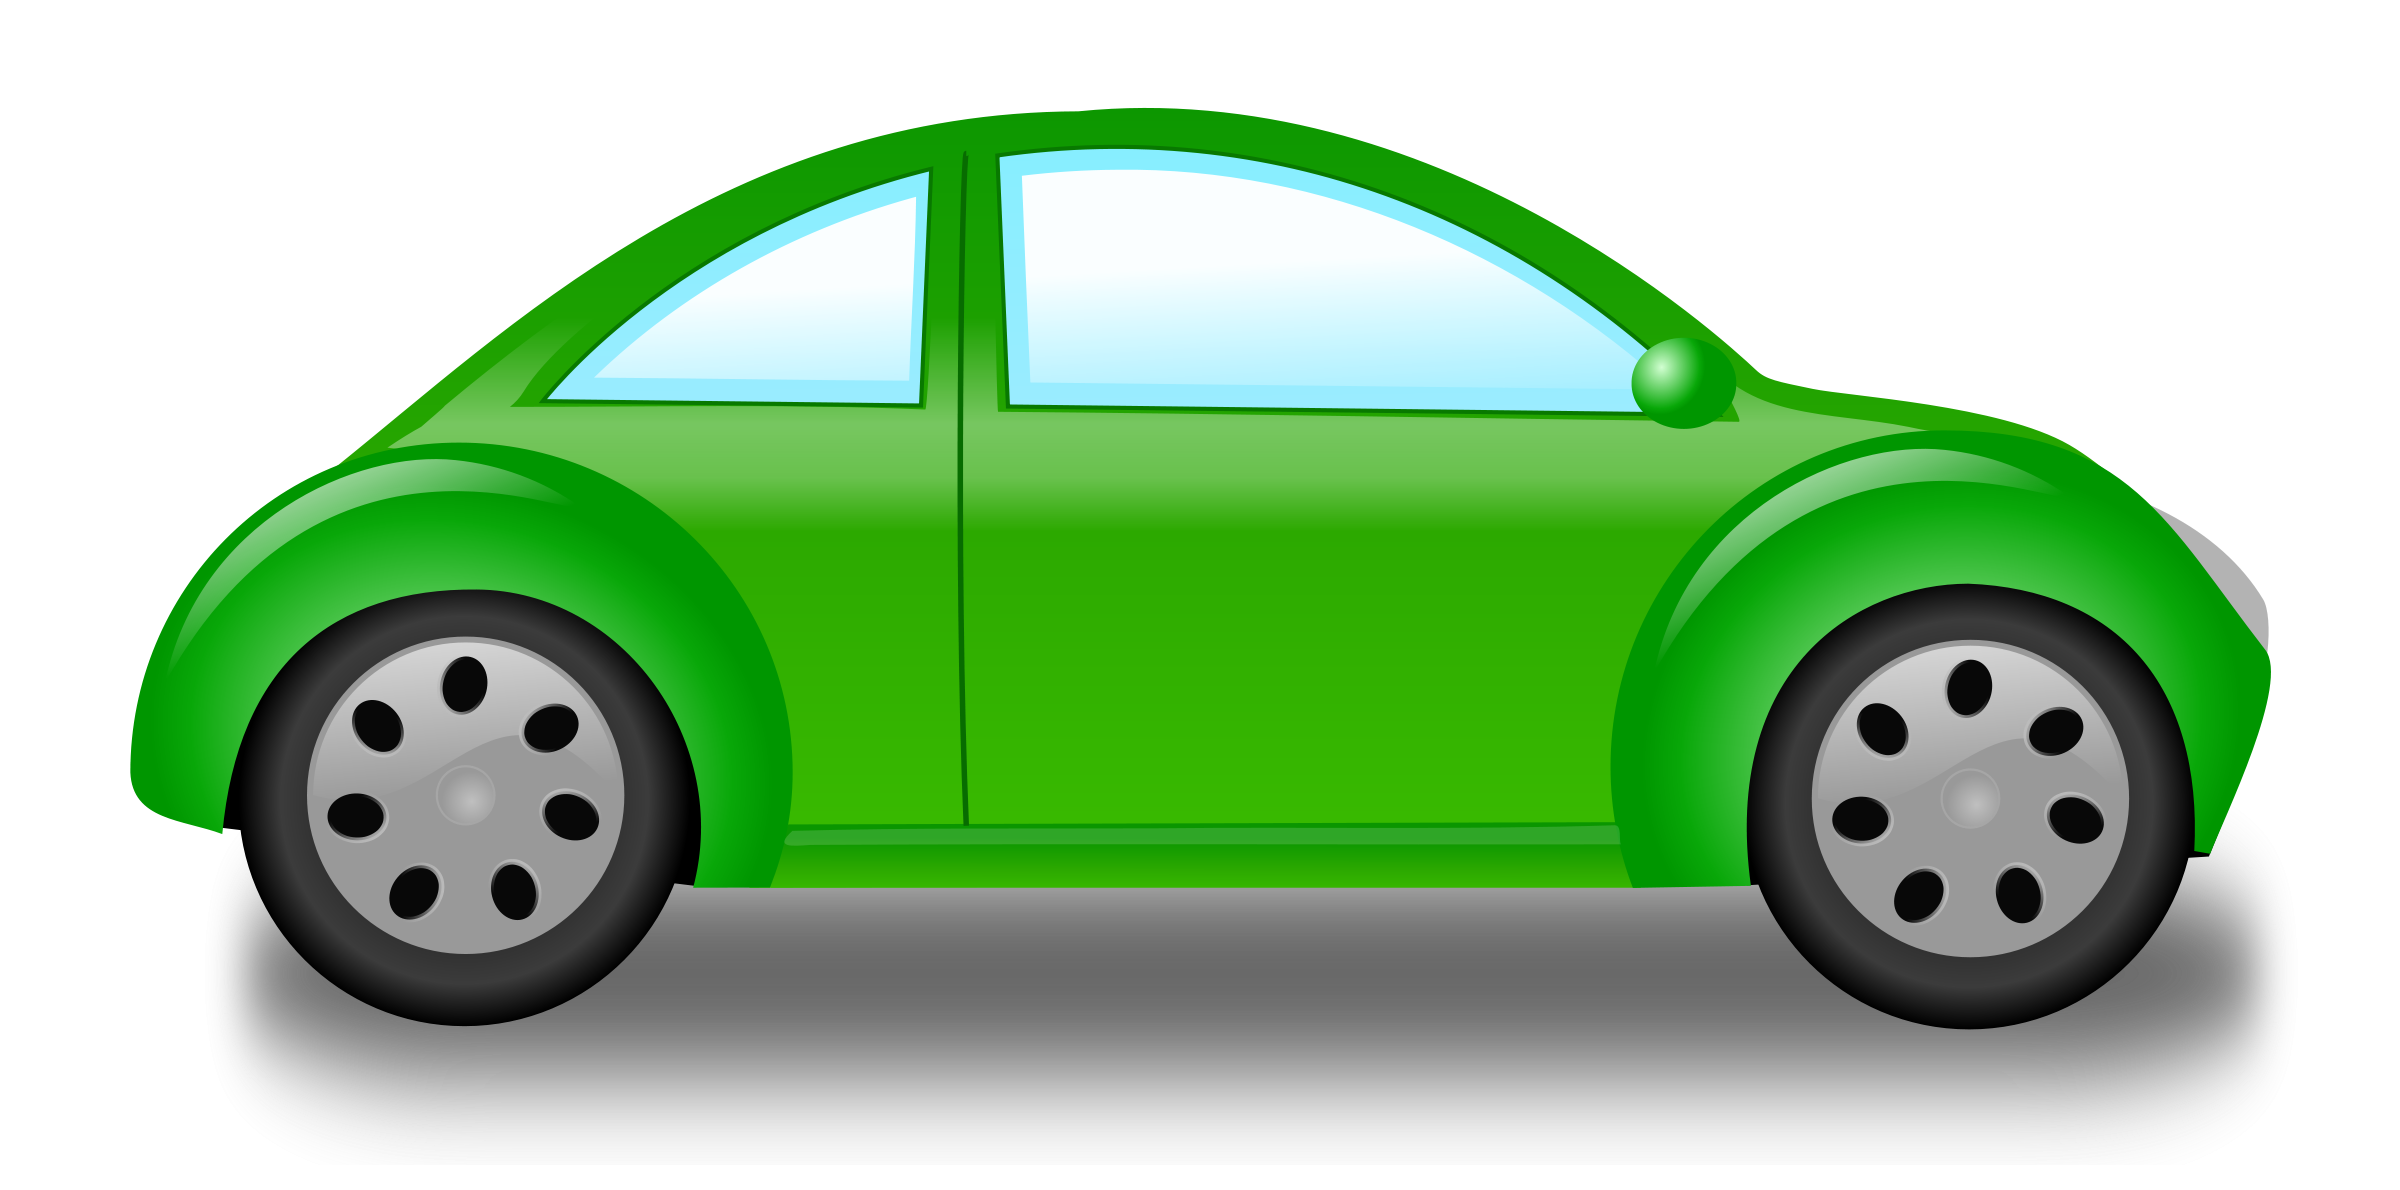 fast car clipart at getdrawings com free for personal use fast car rh getdrawings com cards clipart cars clipart zenqer